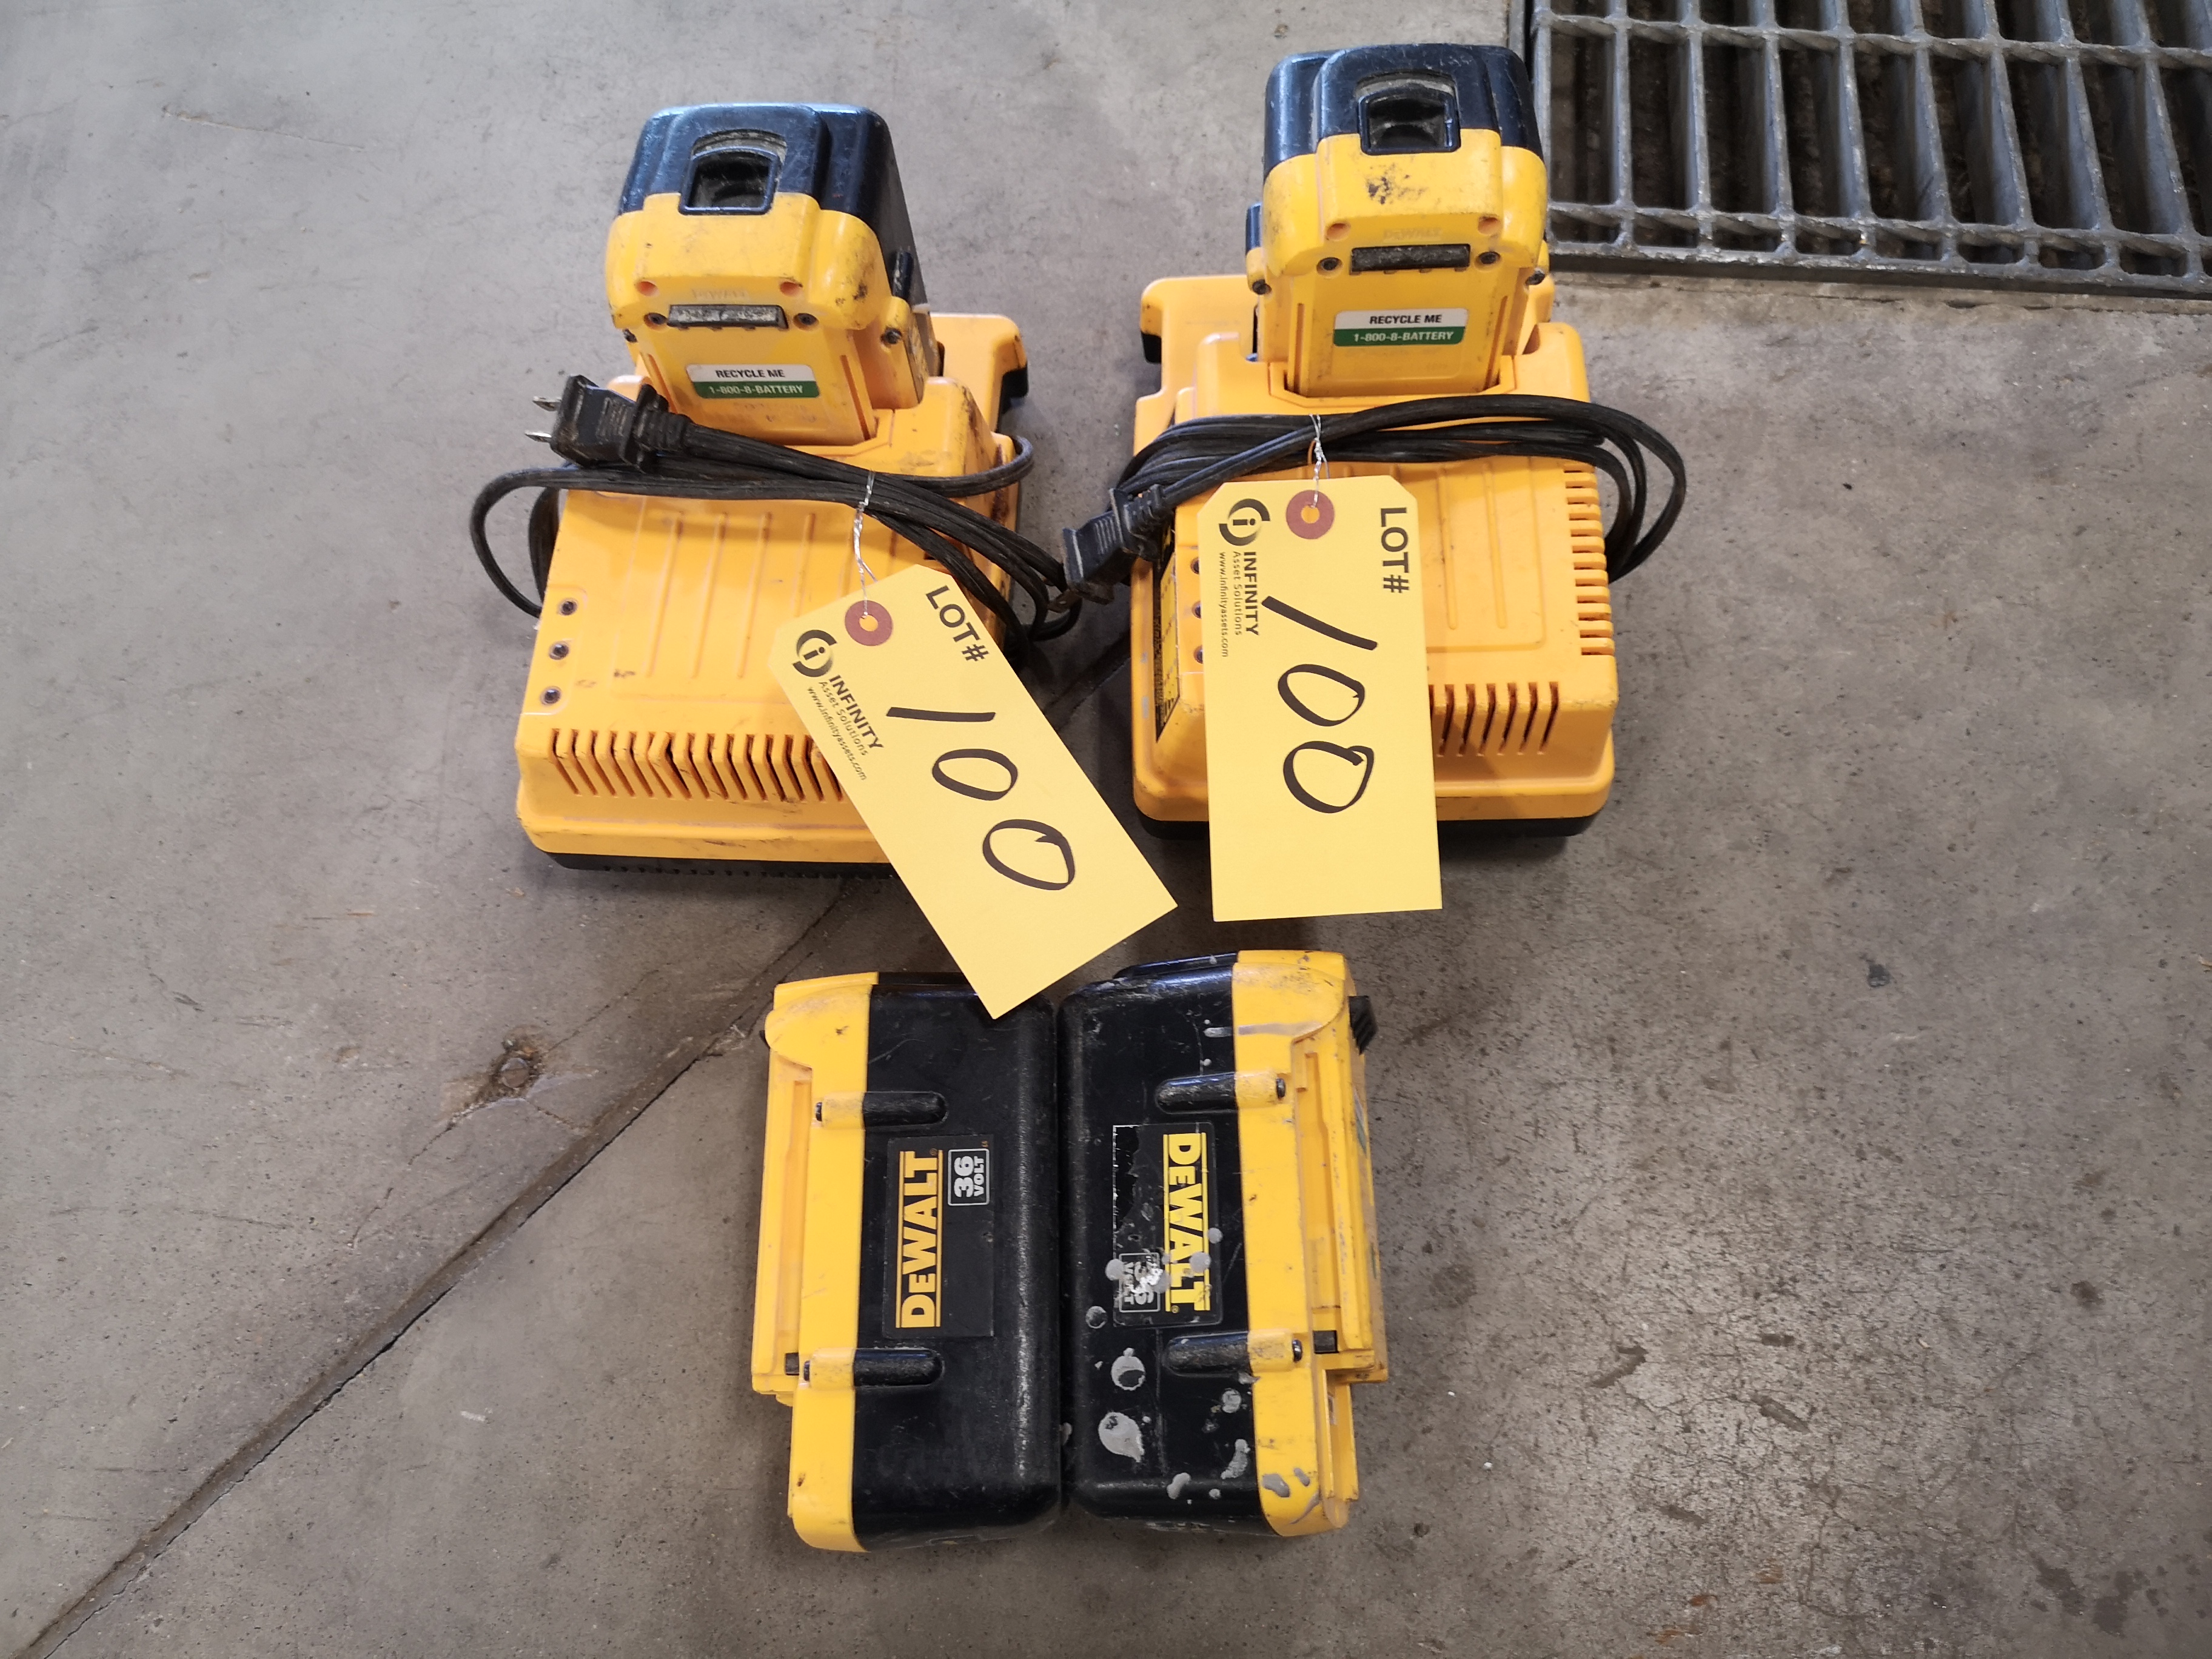 LOT (4) DEWALT 36V BATTERIES AND (2) CHARGERS (LOCATED AT 1135 STELLAR DRIVE, NEWMARKET, ON)